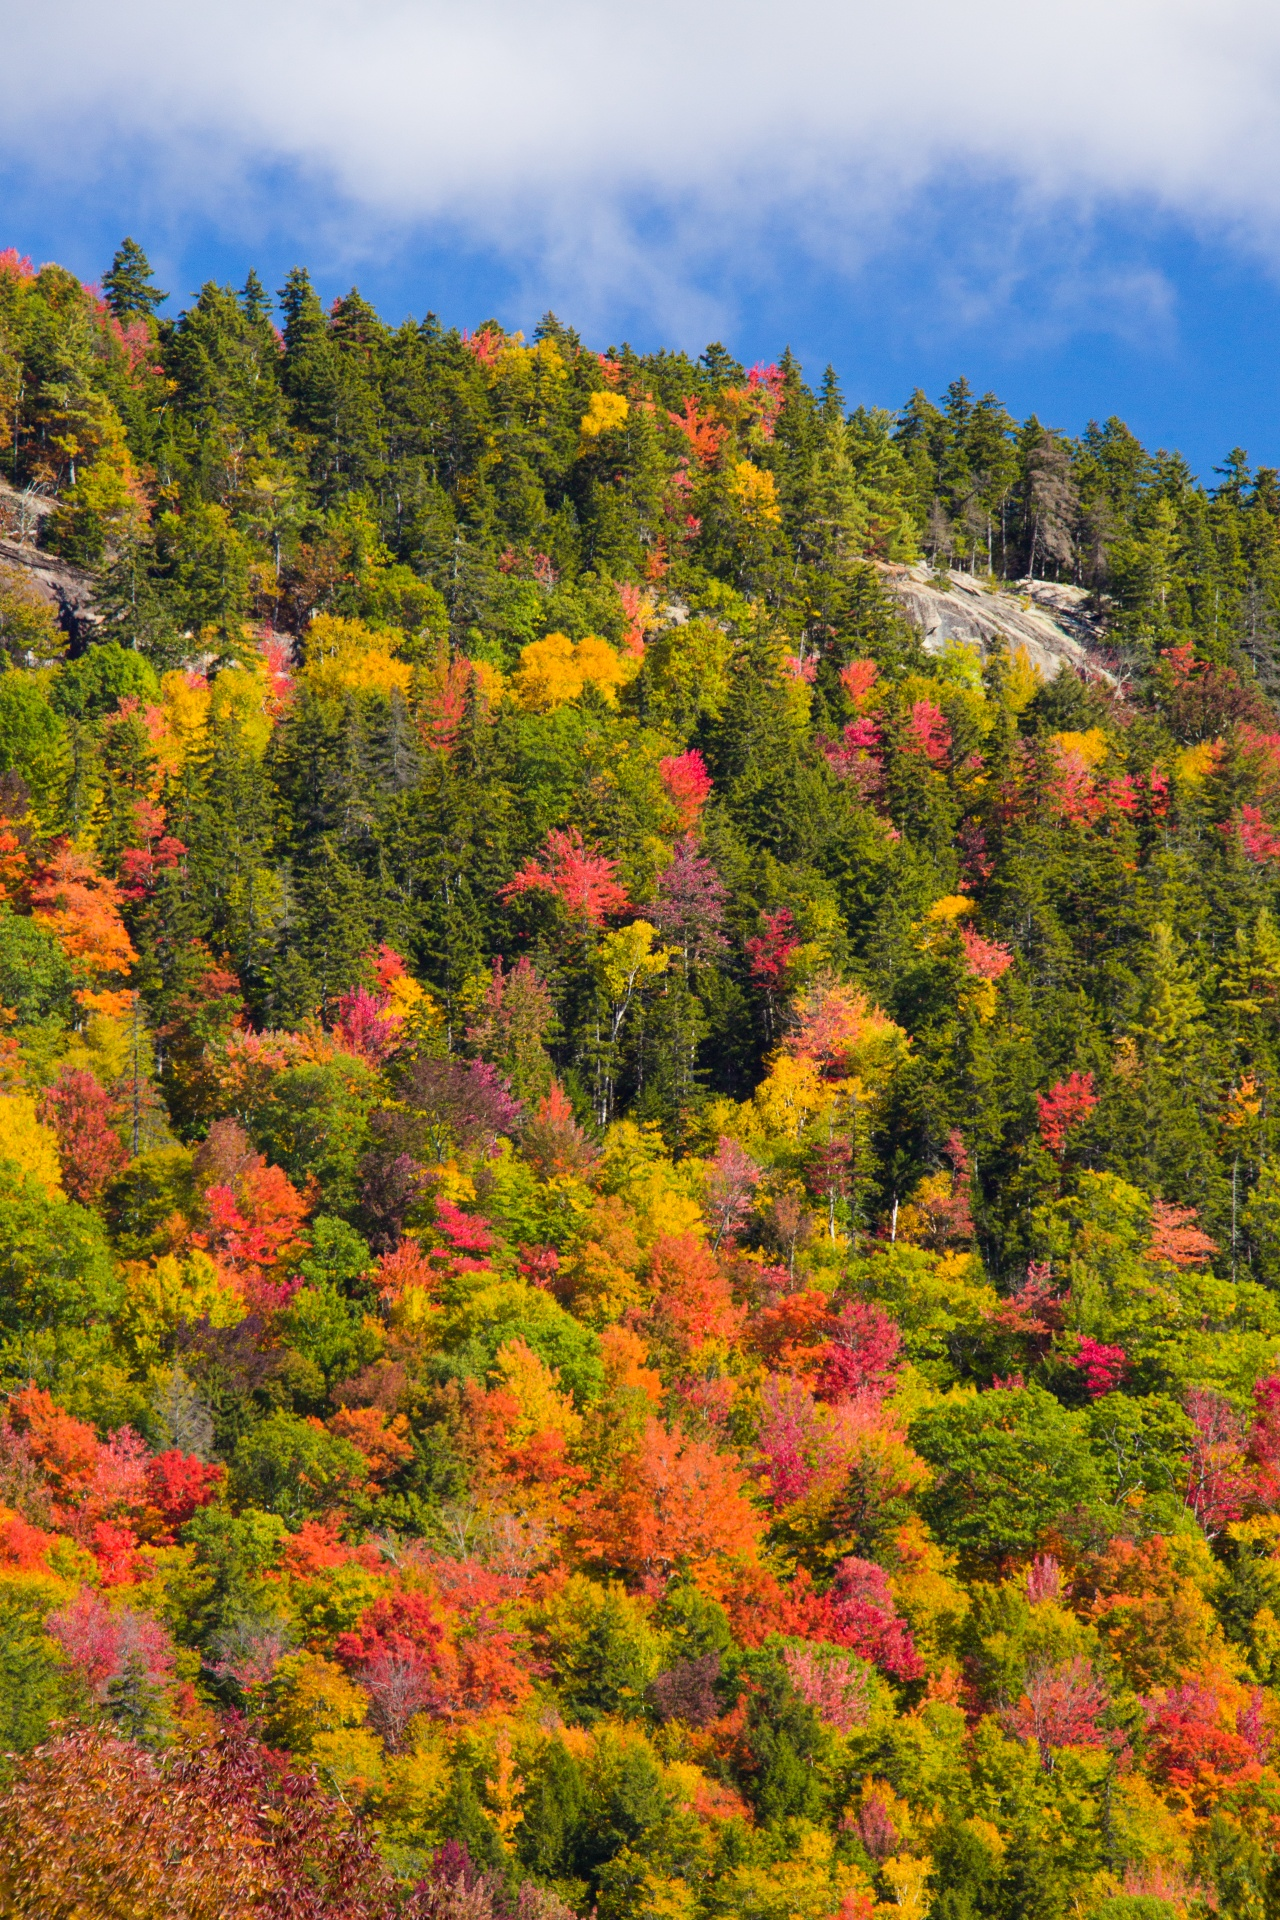 From foliage hikes, to mountain biking, to apple picking, the best of fall begins in Waterville Valley.  Starting at $136 per night , this deal includes Freedom Pass activities like golf, chairlift rides, tennis, athletic club access, bike rentals and more.